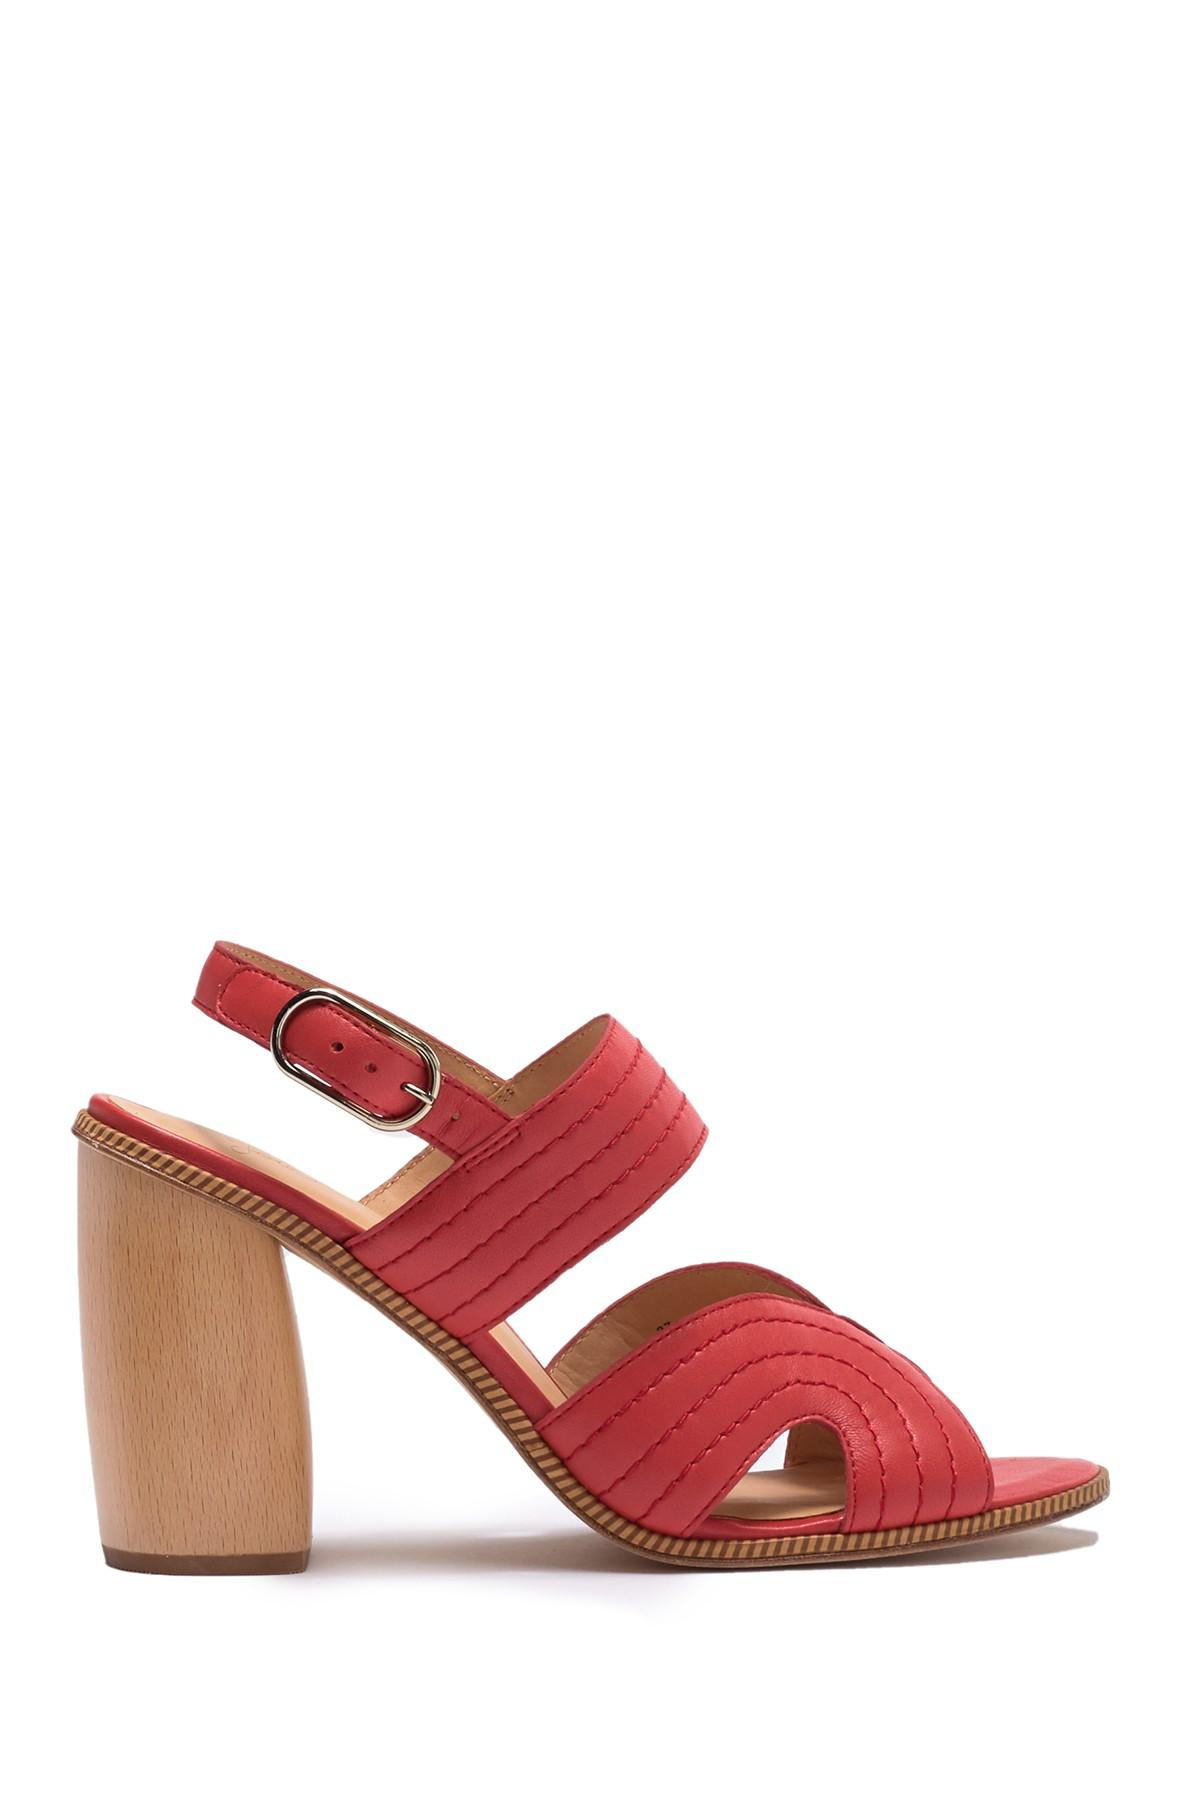 6079c01cbcc Lyst - Joie Aforleen Leather Slingback Strap Heeled Sandal in Red ...